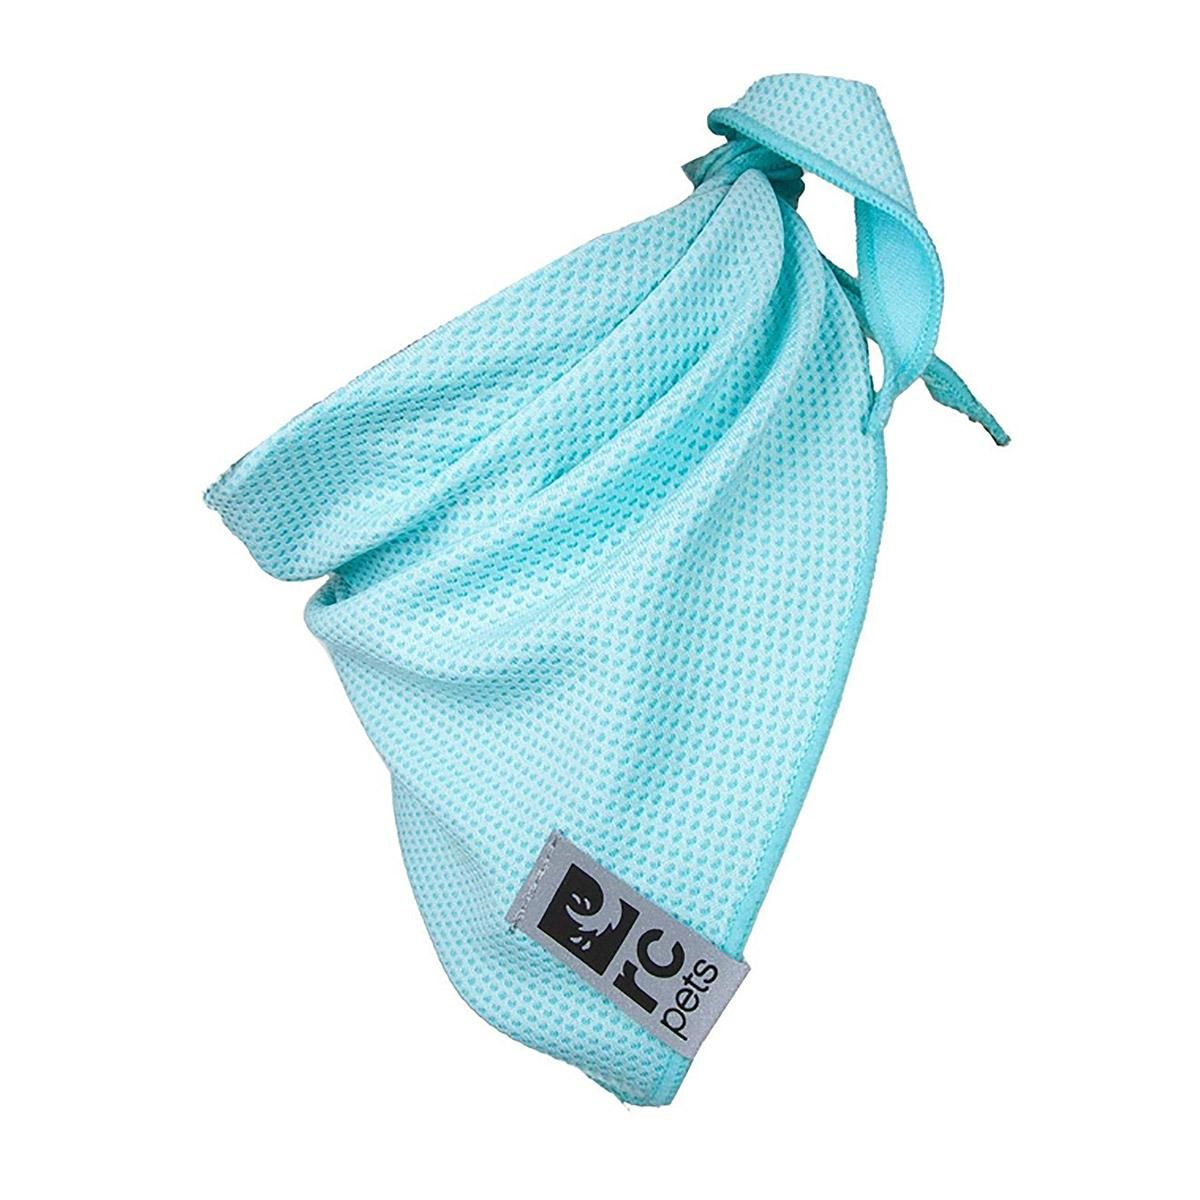 Zephyr Cooling Dog Bandana by RC Pet Ice Blue Pets